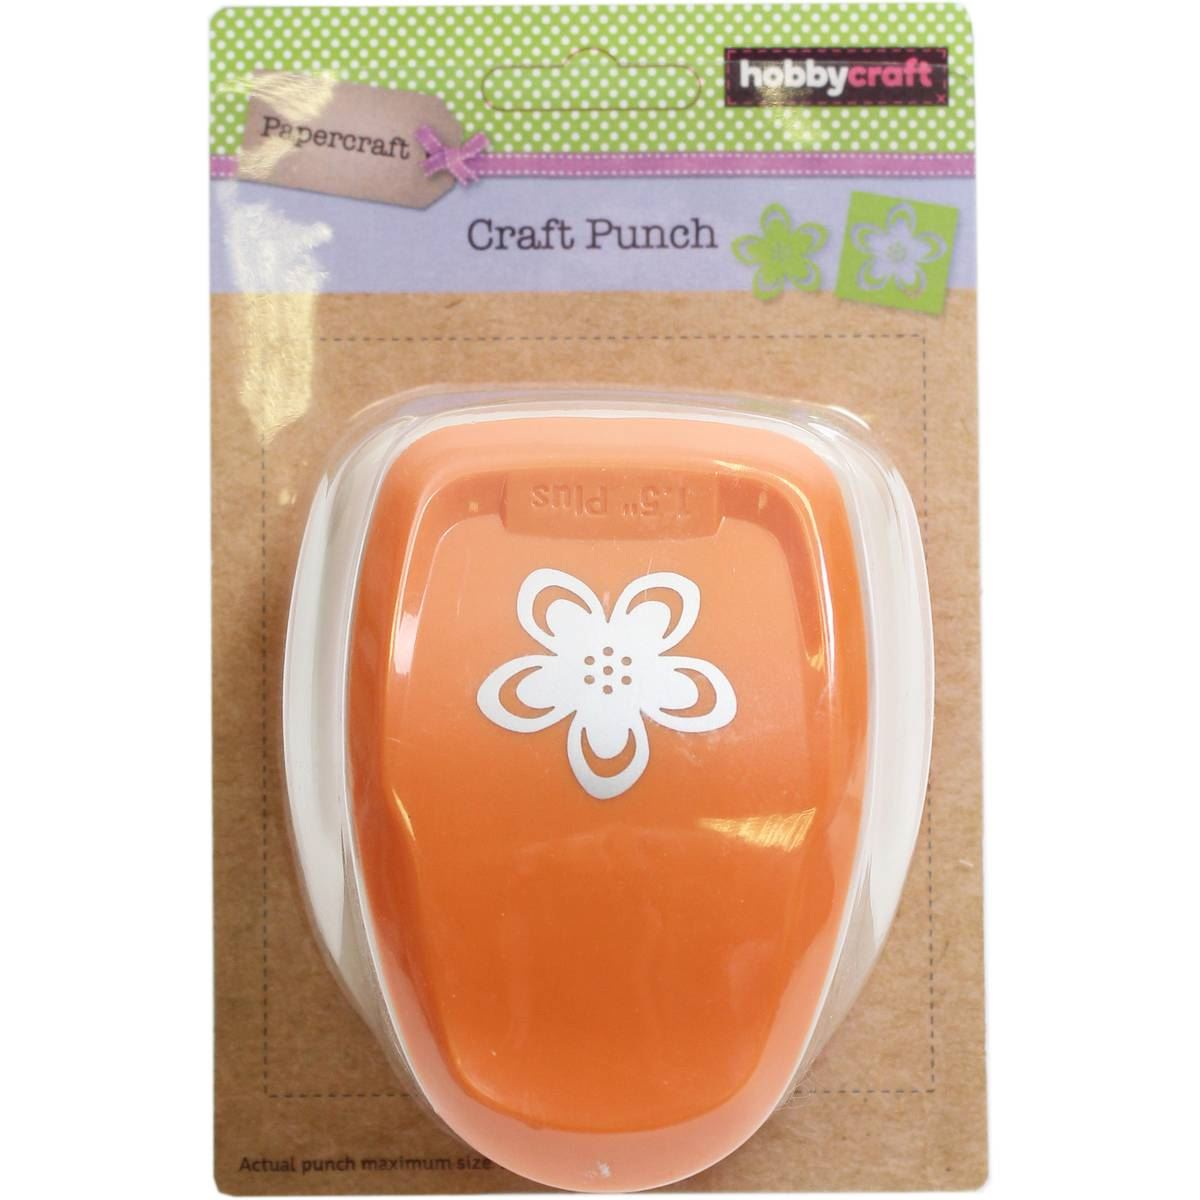 Hobbycraft different designs craft punch 1 5 inch for Craft punches for sale